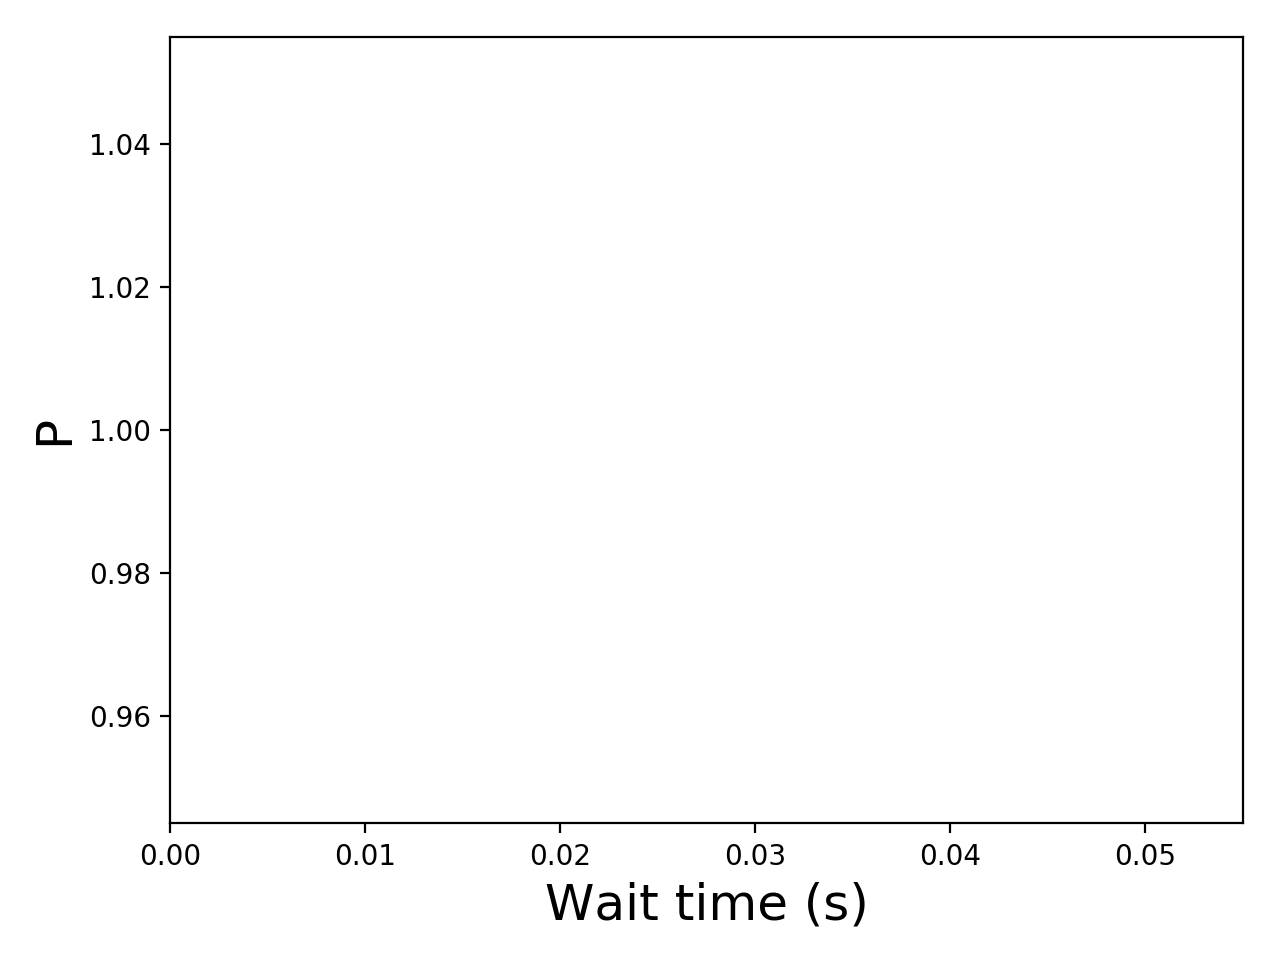 Task wait time CDF graph for the askalon-new_ee29 trace.